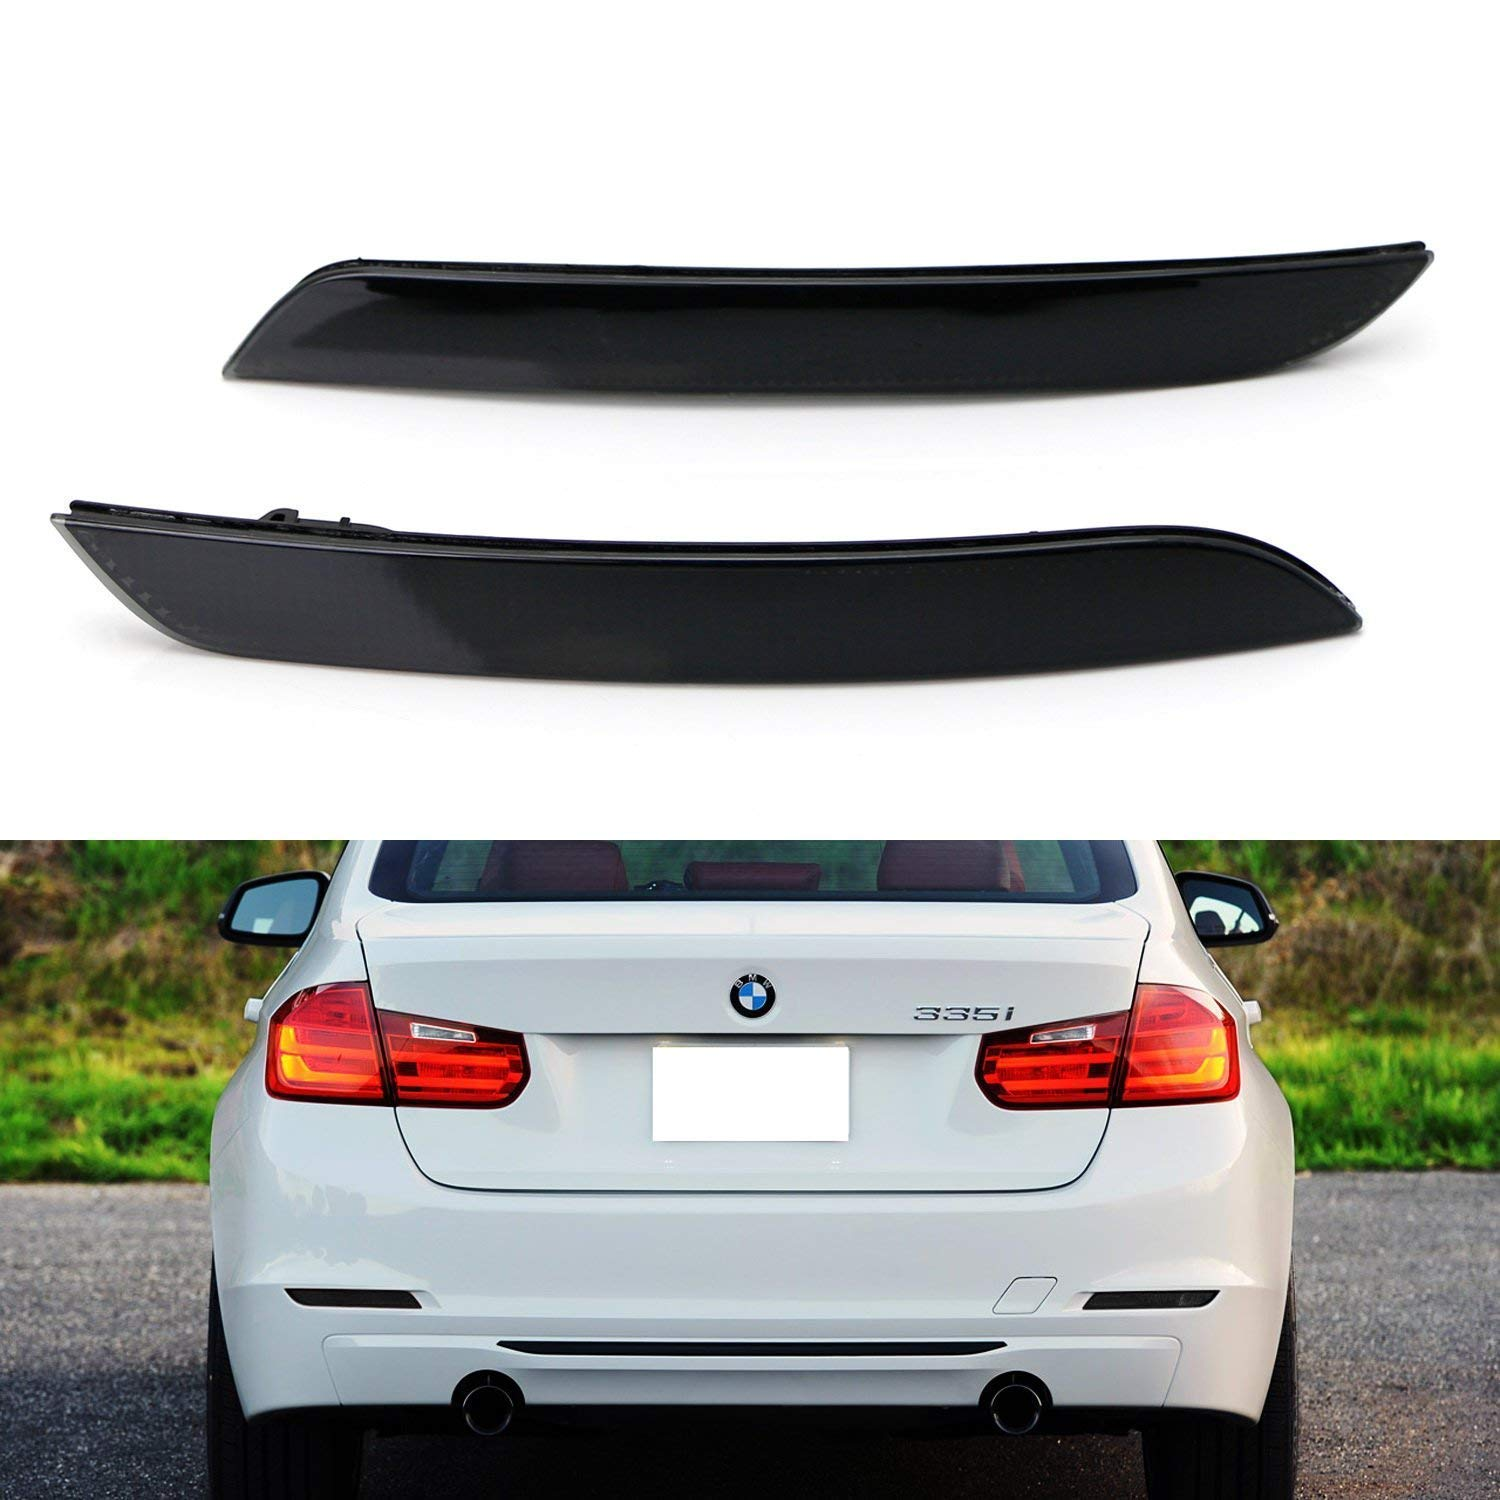 iJDMTOY Smoked Lens Rear Bumper Reflector Lenses For BMW F30 F31 F32 F33 3 4 Series Regular Bumper, OE-Spec LH RH Assembly (Will NOT Fit Sports Bumper or M3/M4)